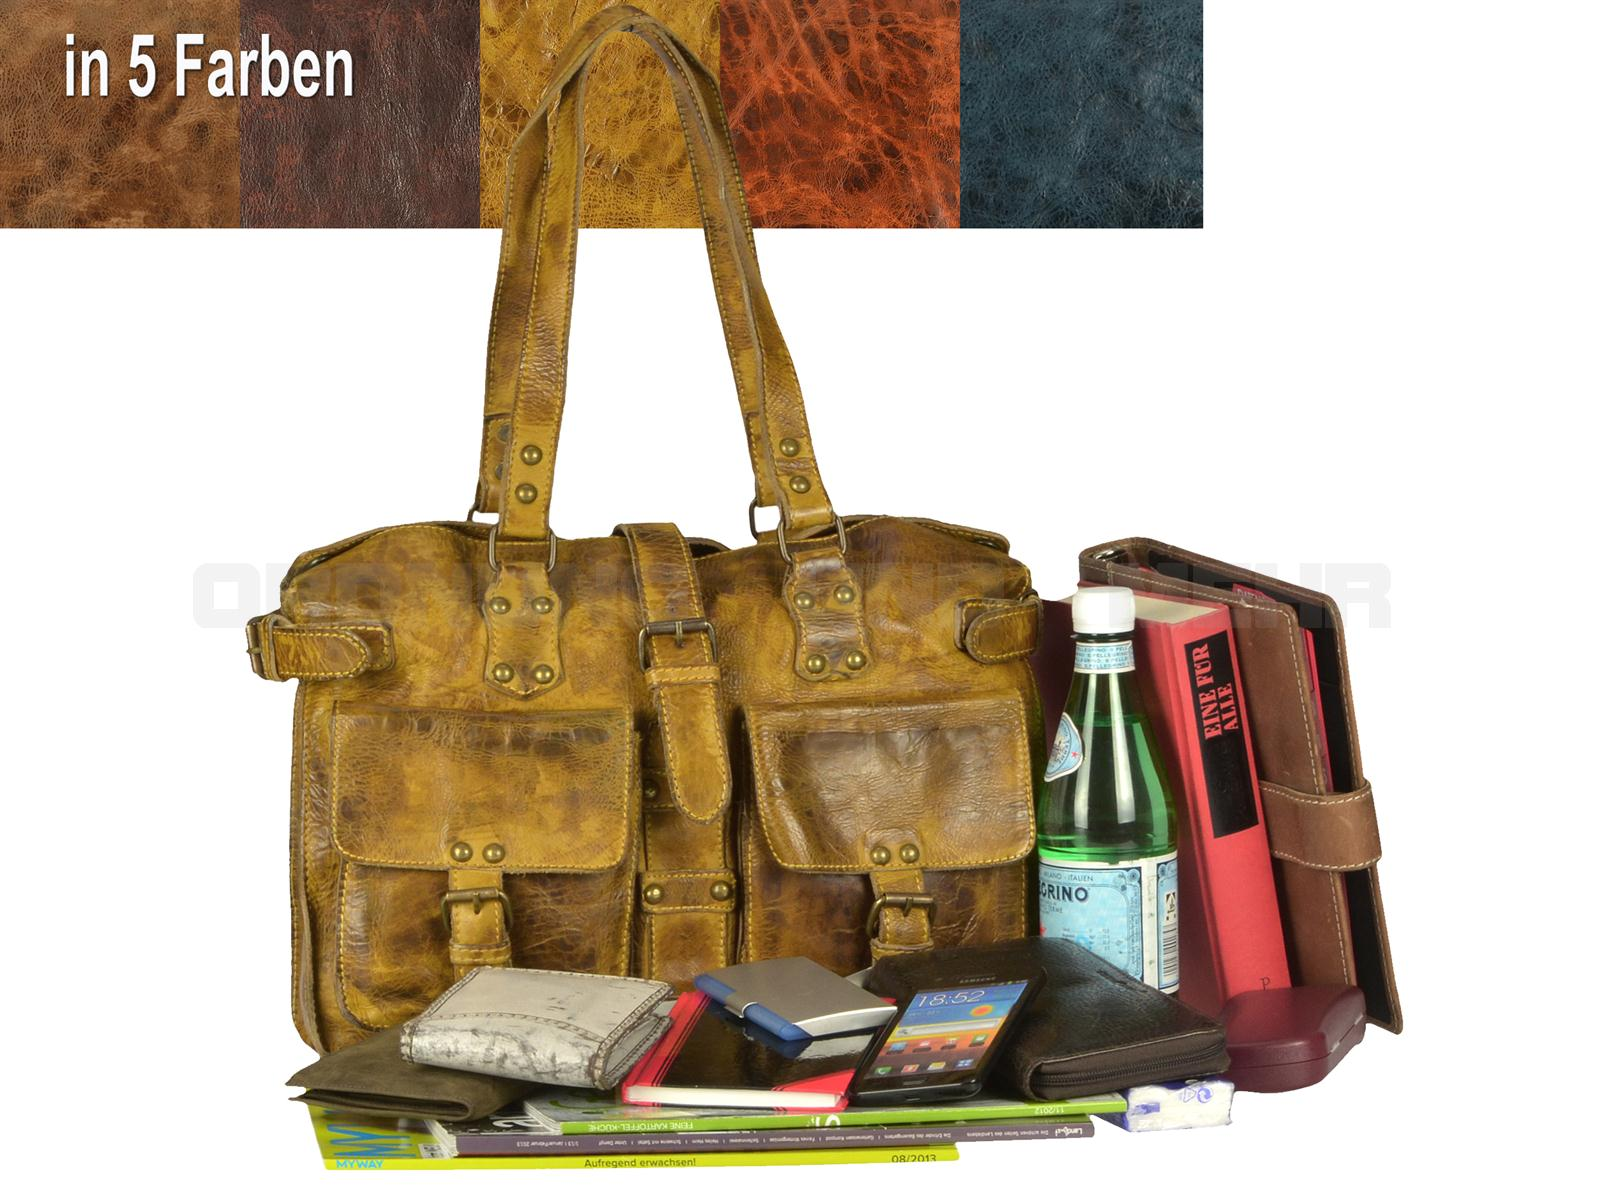 Modische Damentaschen aus Leder BILLY THE KID Modell KATE Damen Handtasche Shopper Damentasche